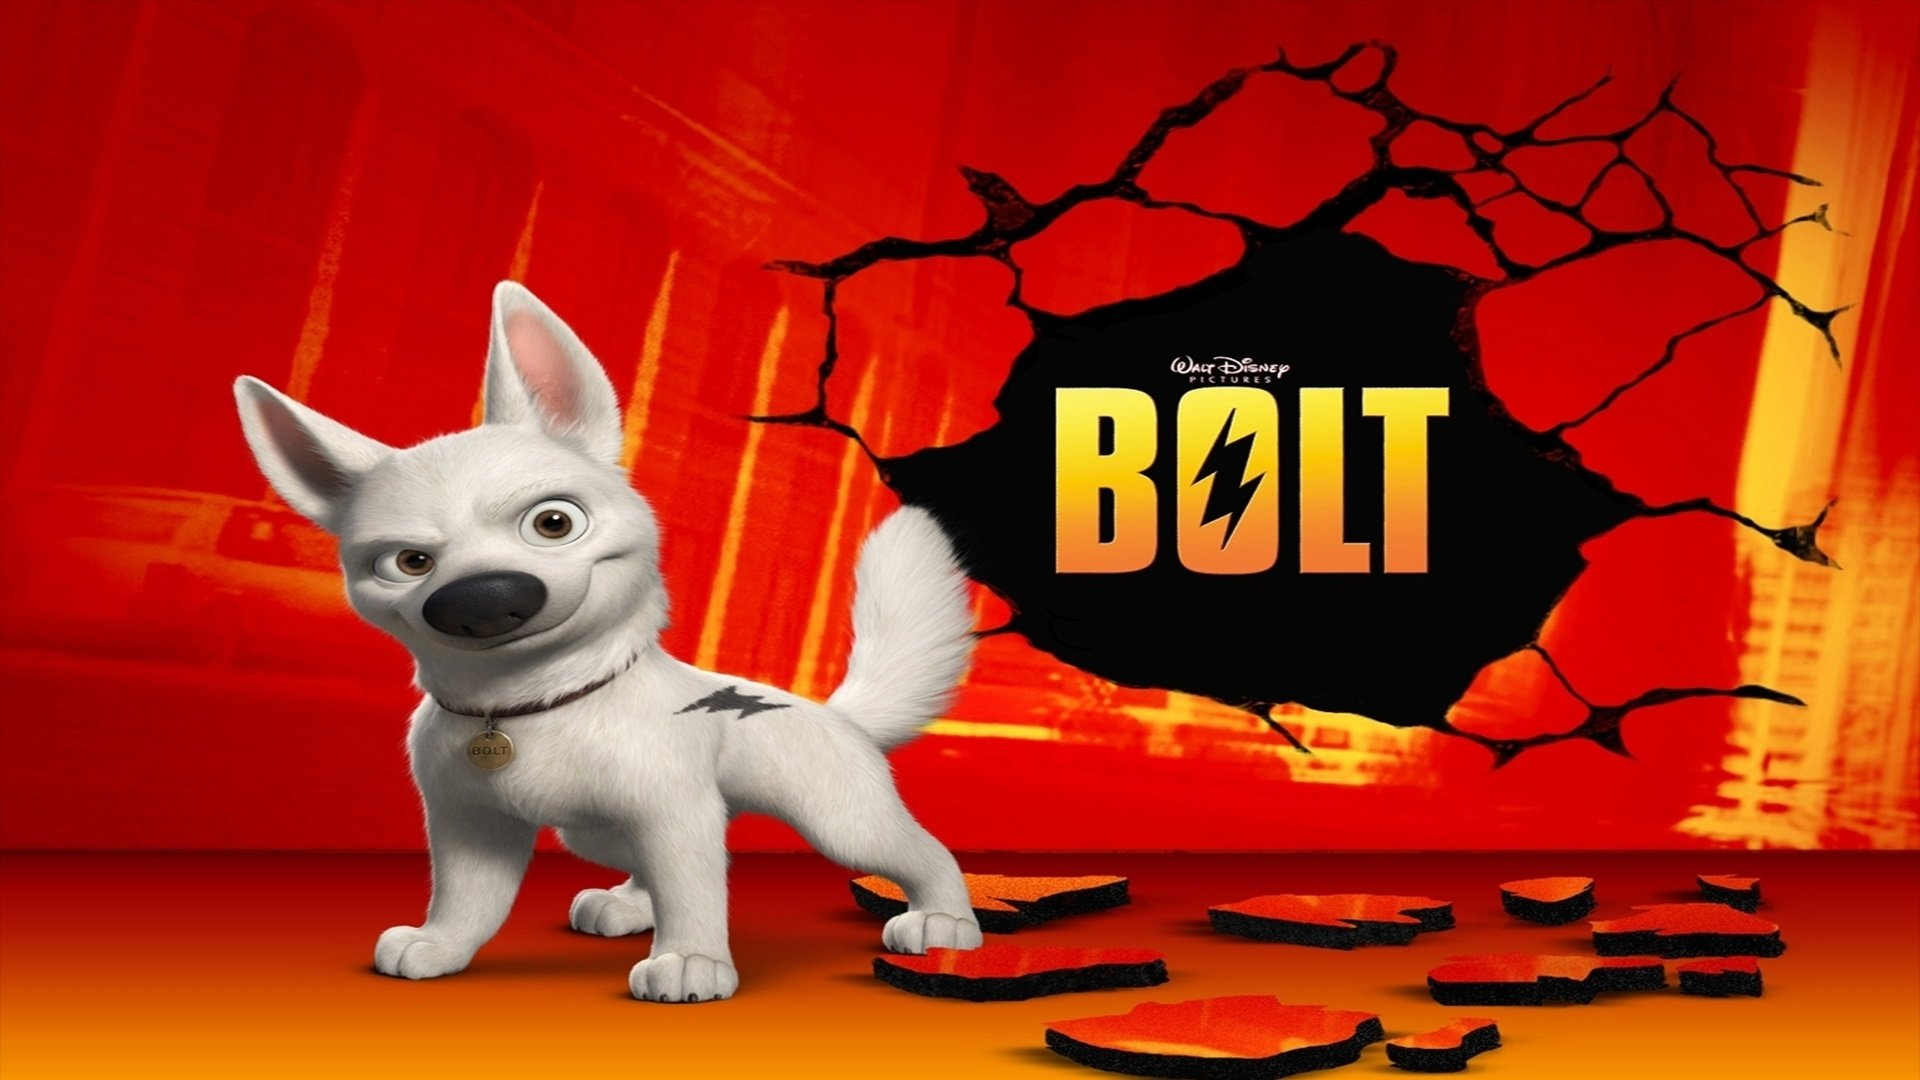 Bolt Full Hd Wallpaper And Background 1920x1080 Id 532024 HD Wallpapers Download Free Images Wallpaper [1000image.com]